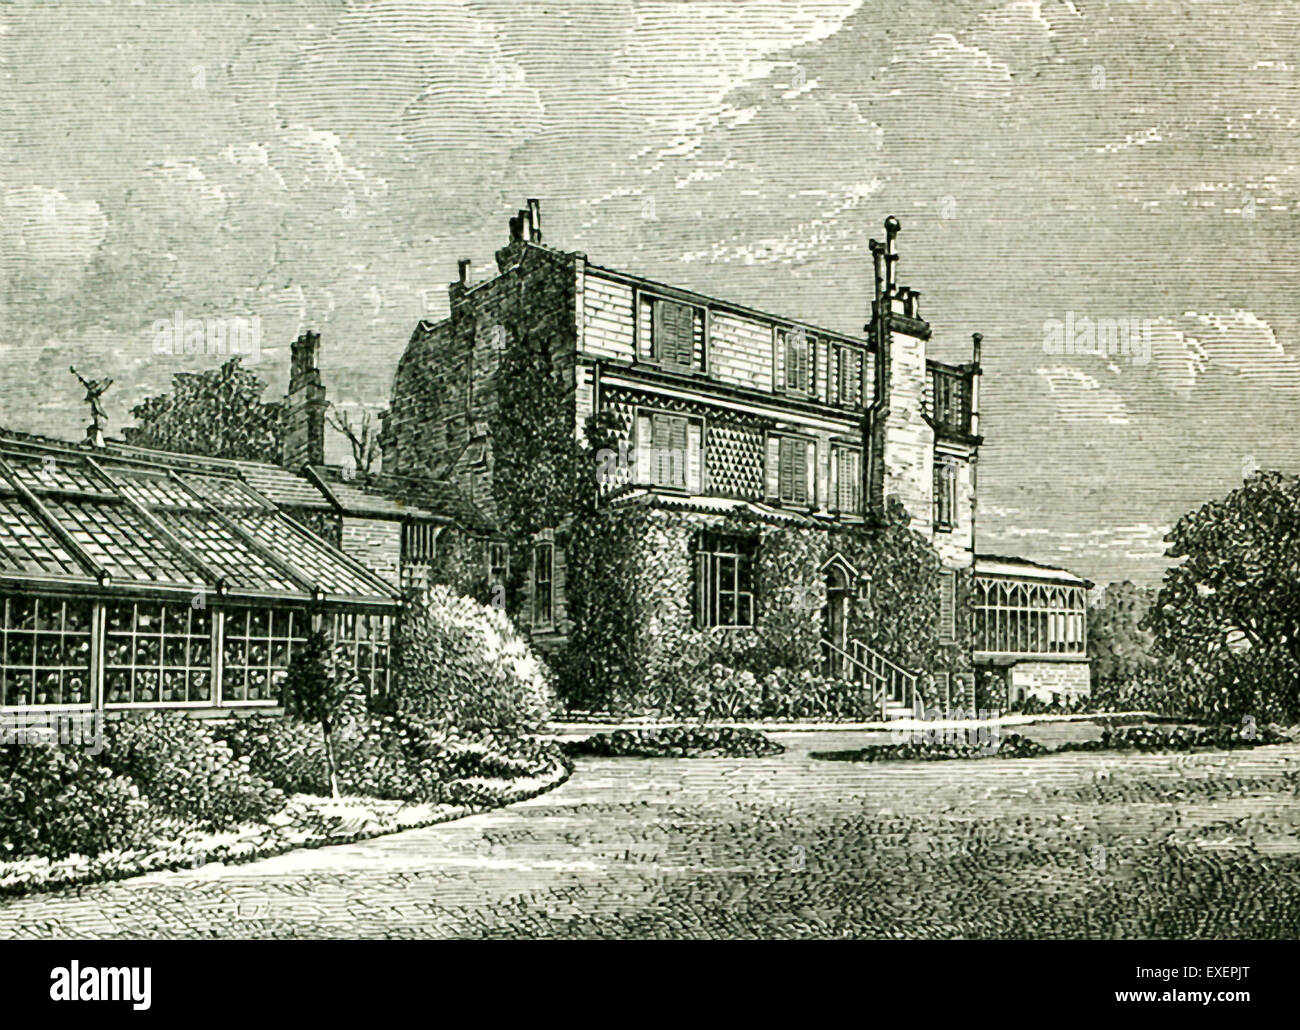 This illustration from John Forster's The Life of Charles Dickens shows the house and conservatory at Gadshill from Stock Photo